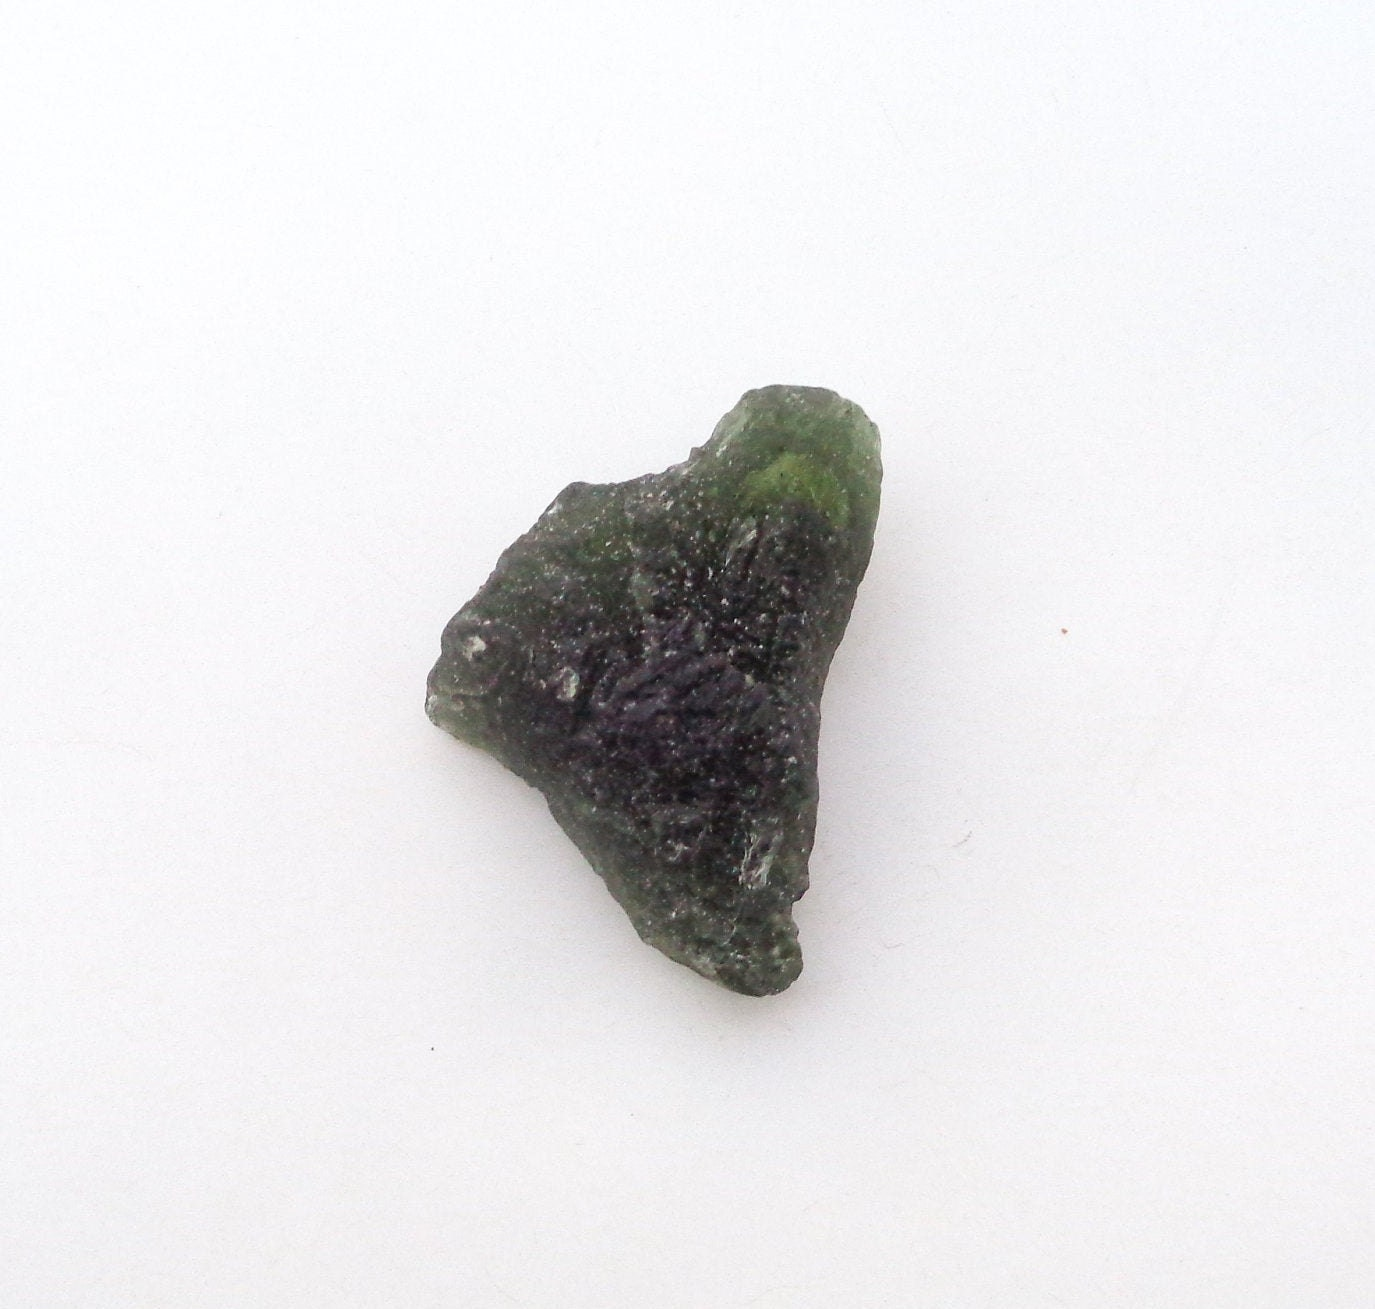 Crafts 15713 Raw Materials Suppliers Awesome Natural Green Moldavite Rough Gemstone For Making Jewellery Size 19x15x3.5 MM Czech Republic